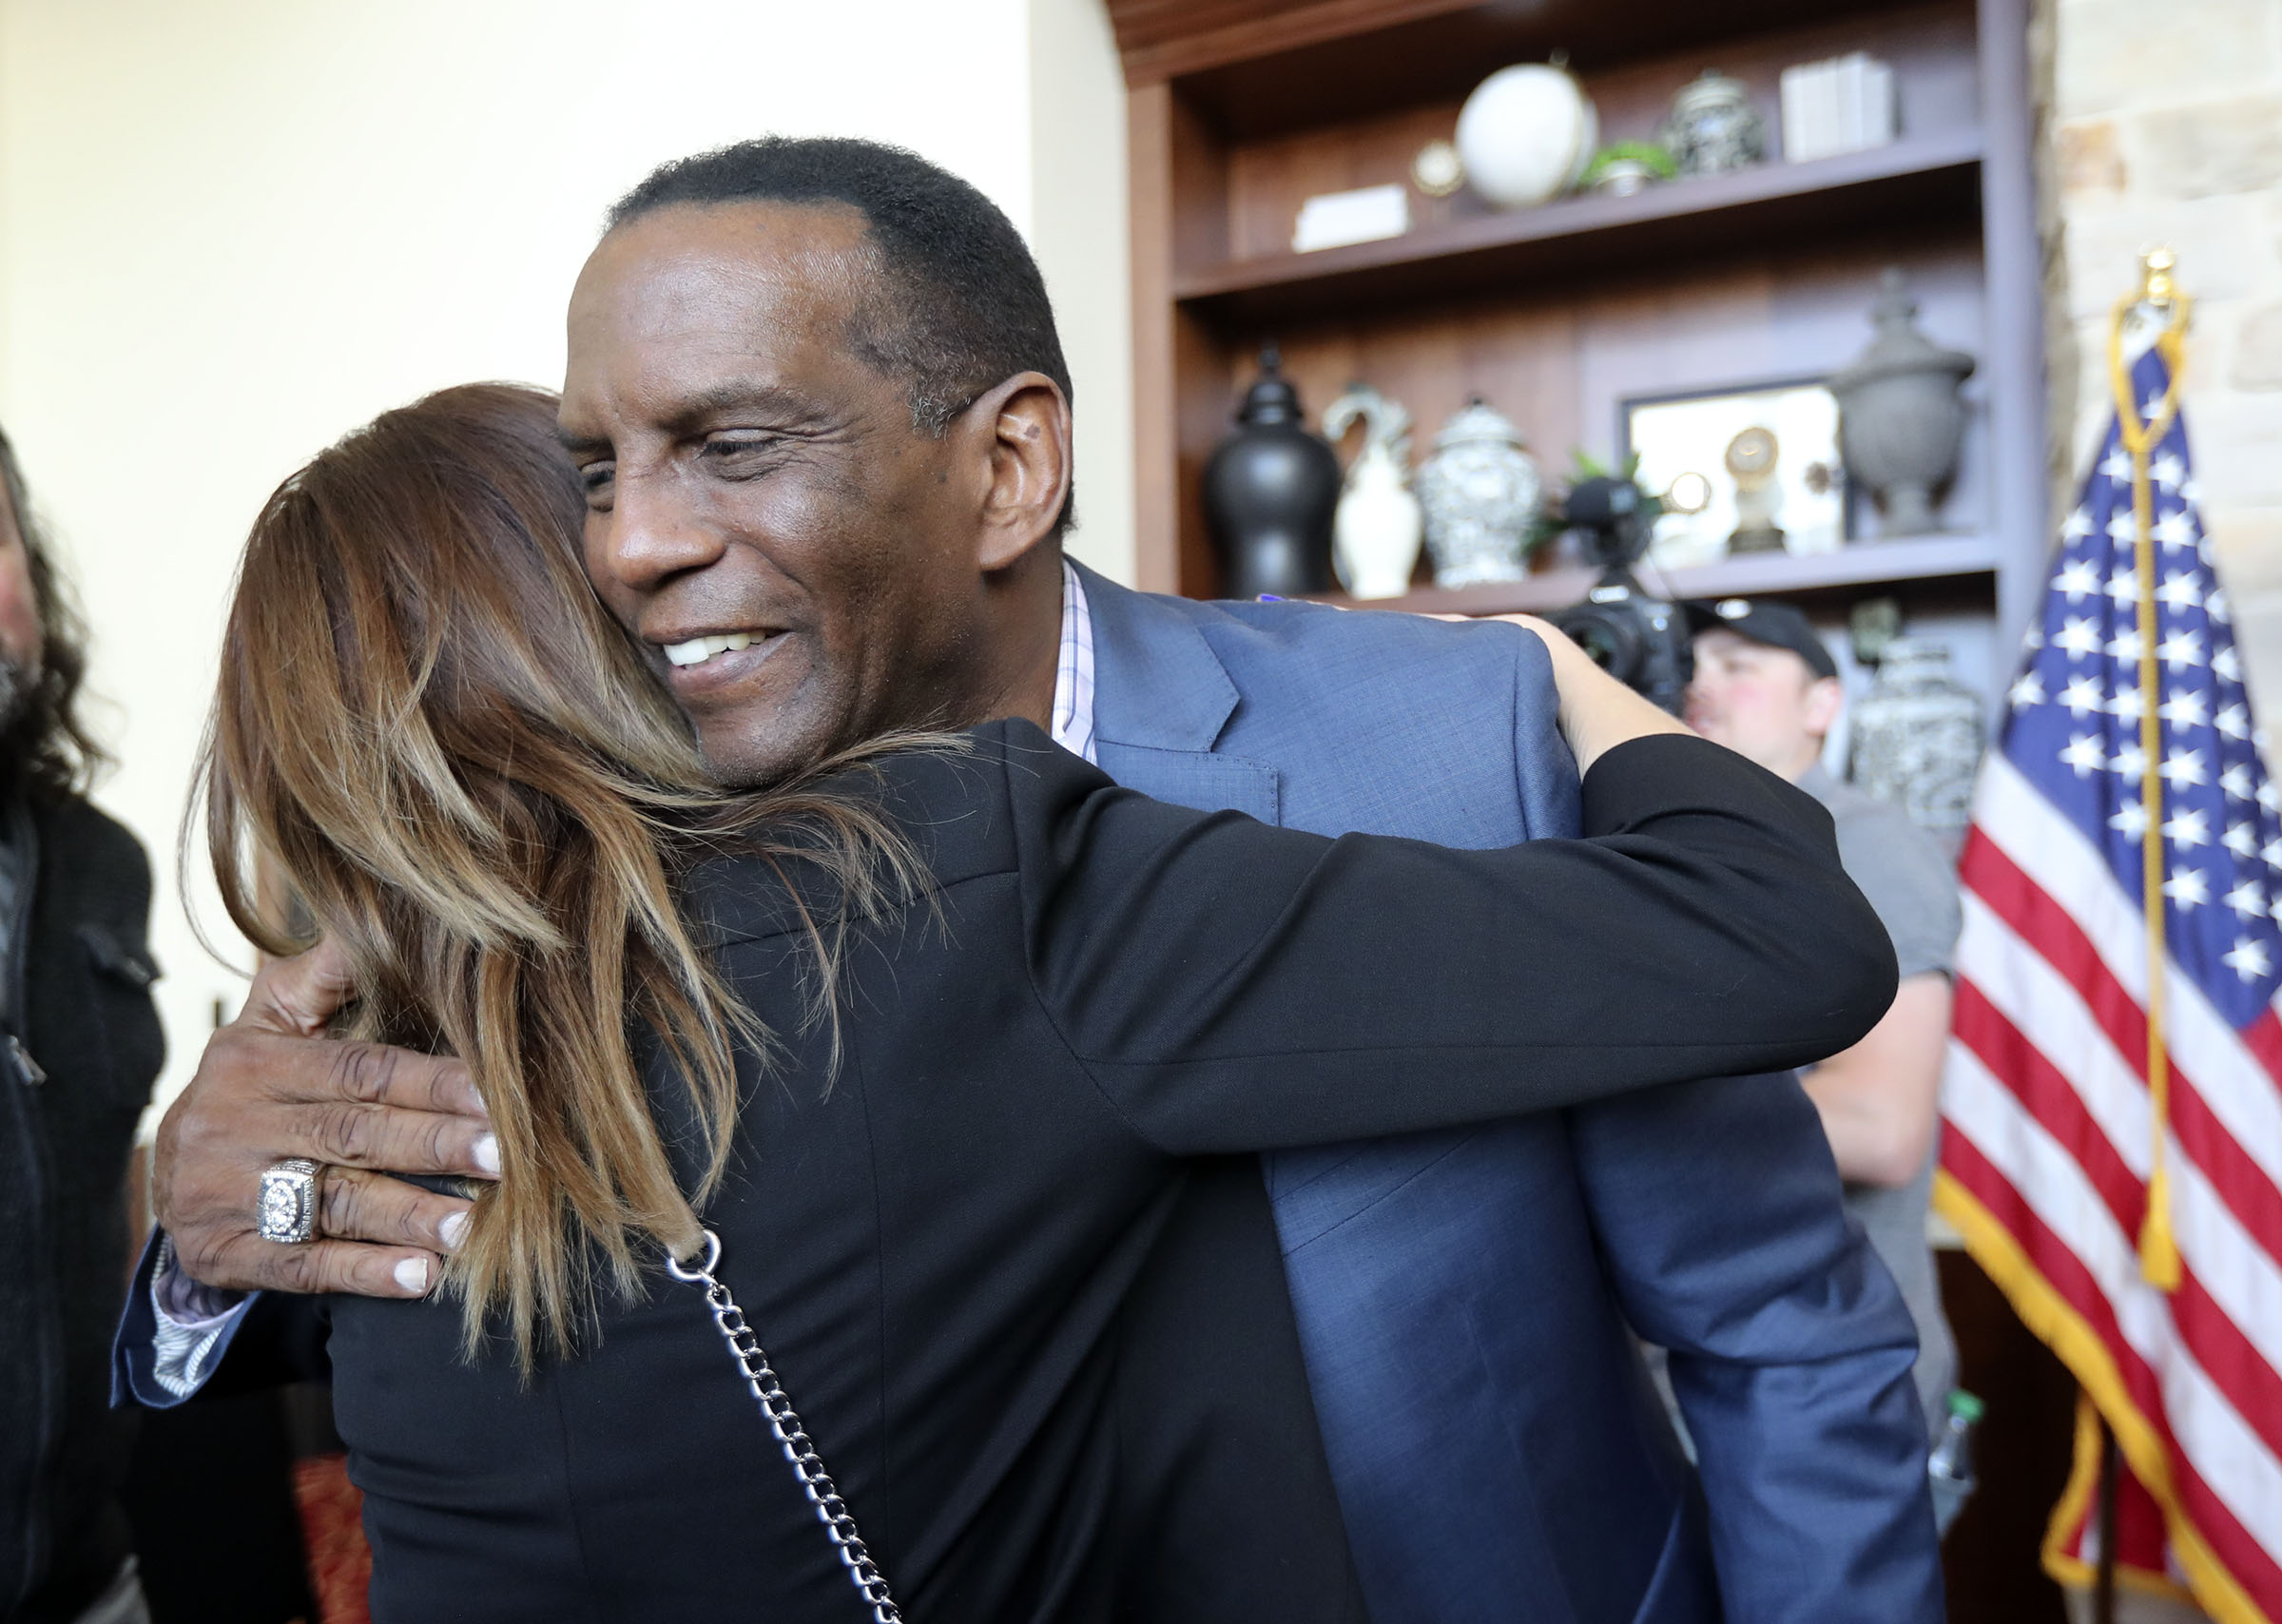 Republican Burgess Owens hugs Melissa Moss before announcing his run against Rep. Ben McAdams, D-Utah, in the 4th Congressional District during a campaign launch event at Hale Centre Theatre in Sandy on Wednesday, Nov. 6, 2019.